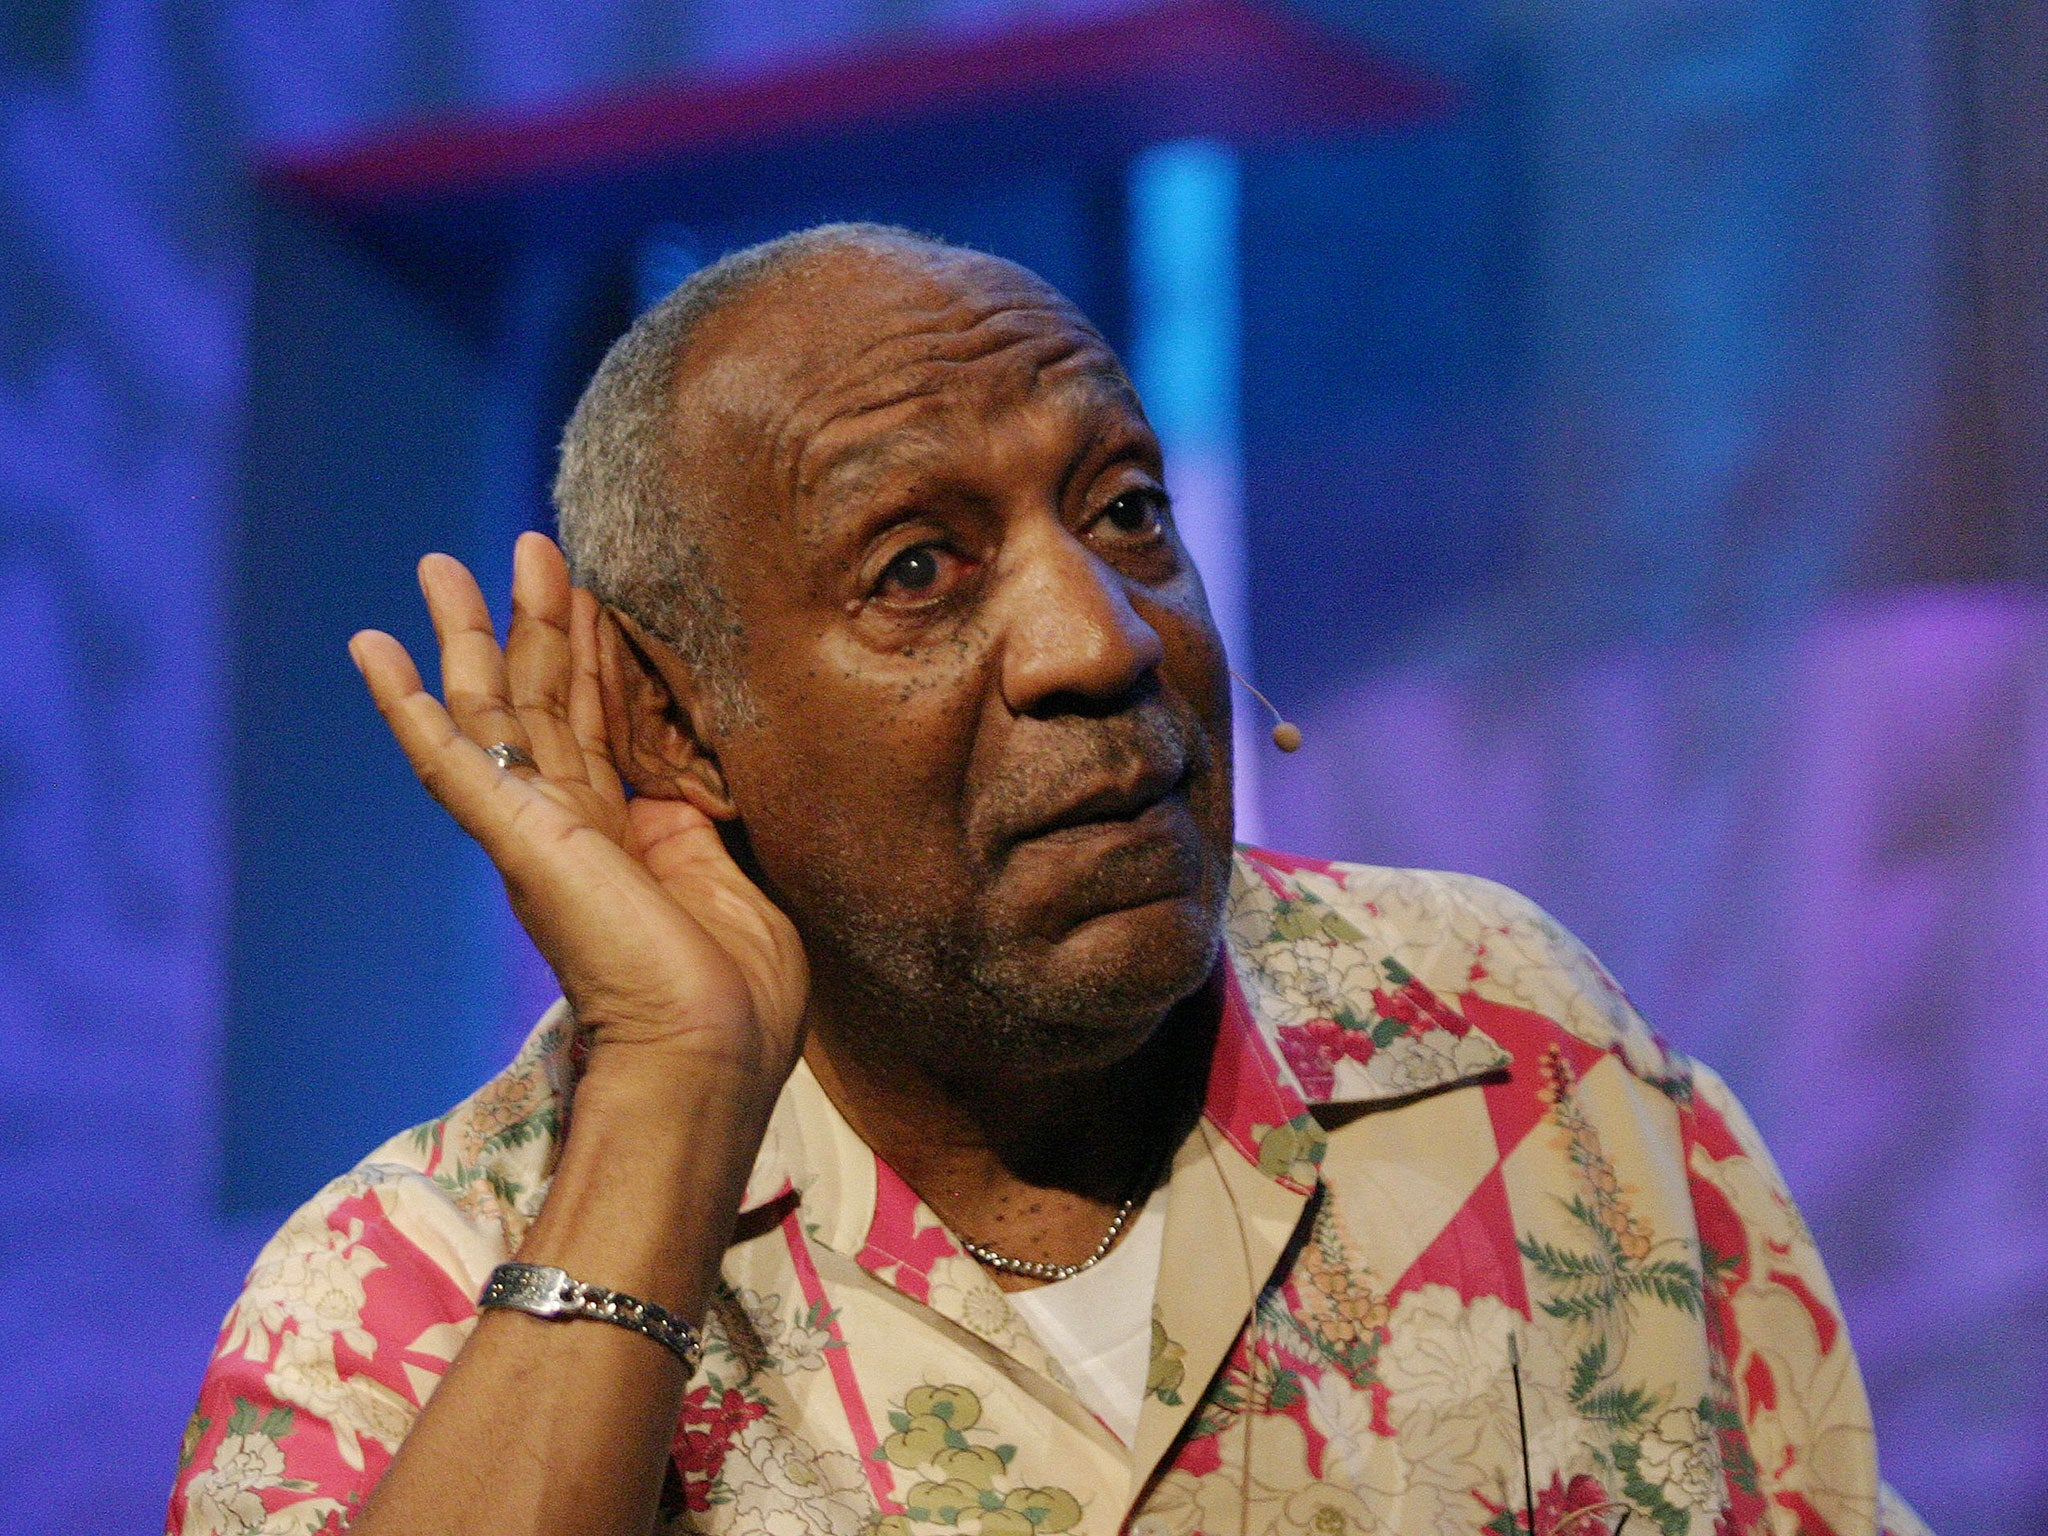 Bill Cosby Memes Twitter Challenge Fails As Users Highlight His Past Rape Allegations The Independent The Independent